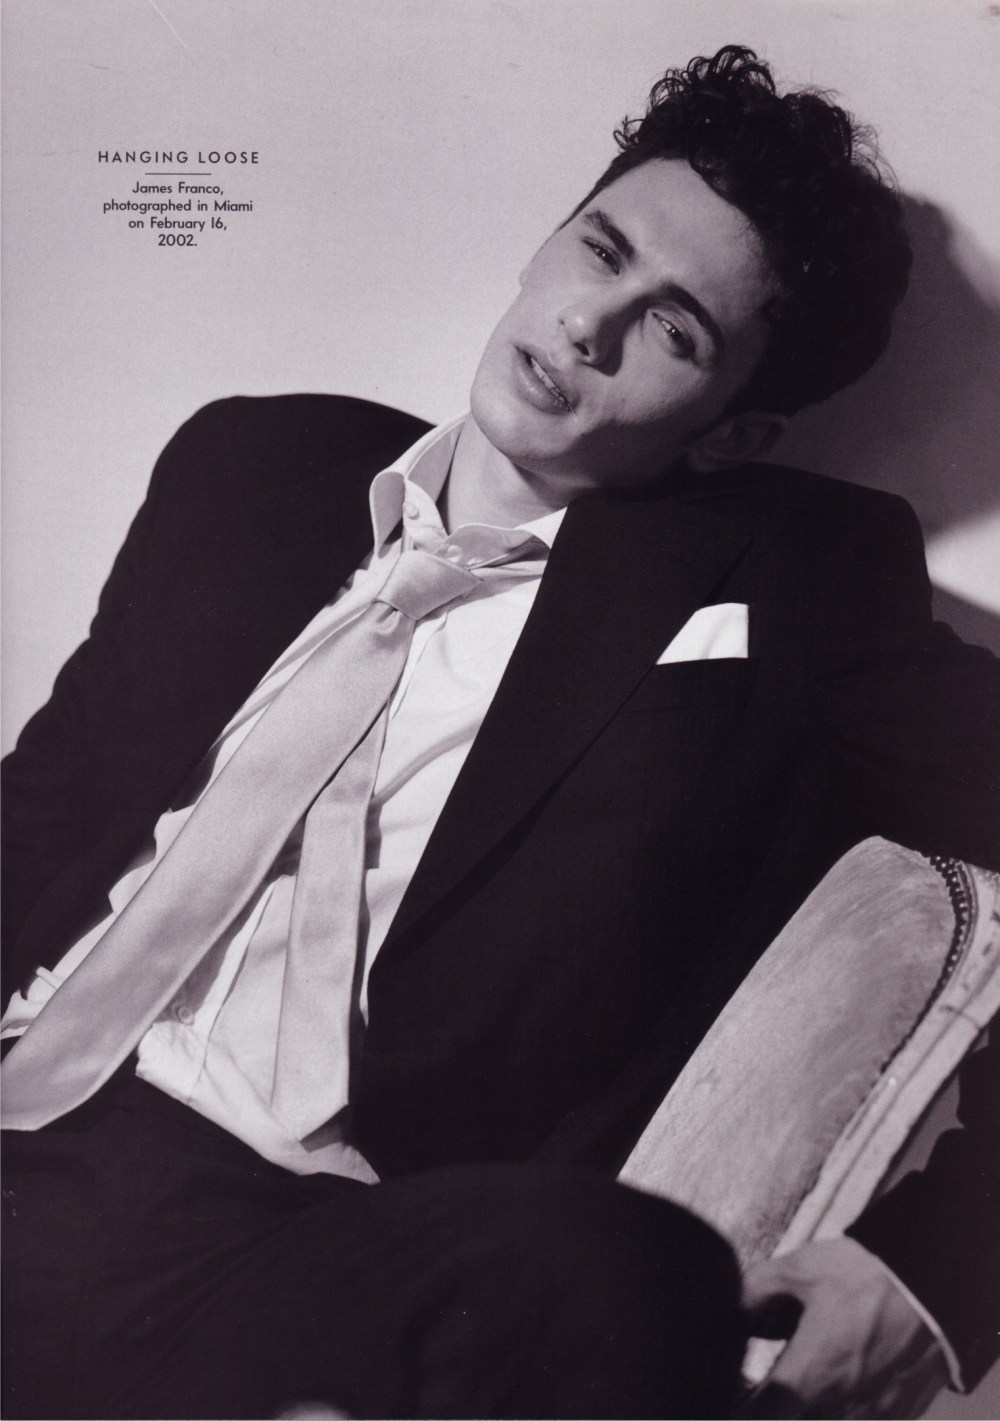 James Franco is sexy af